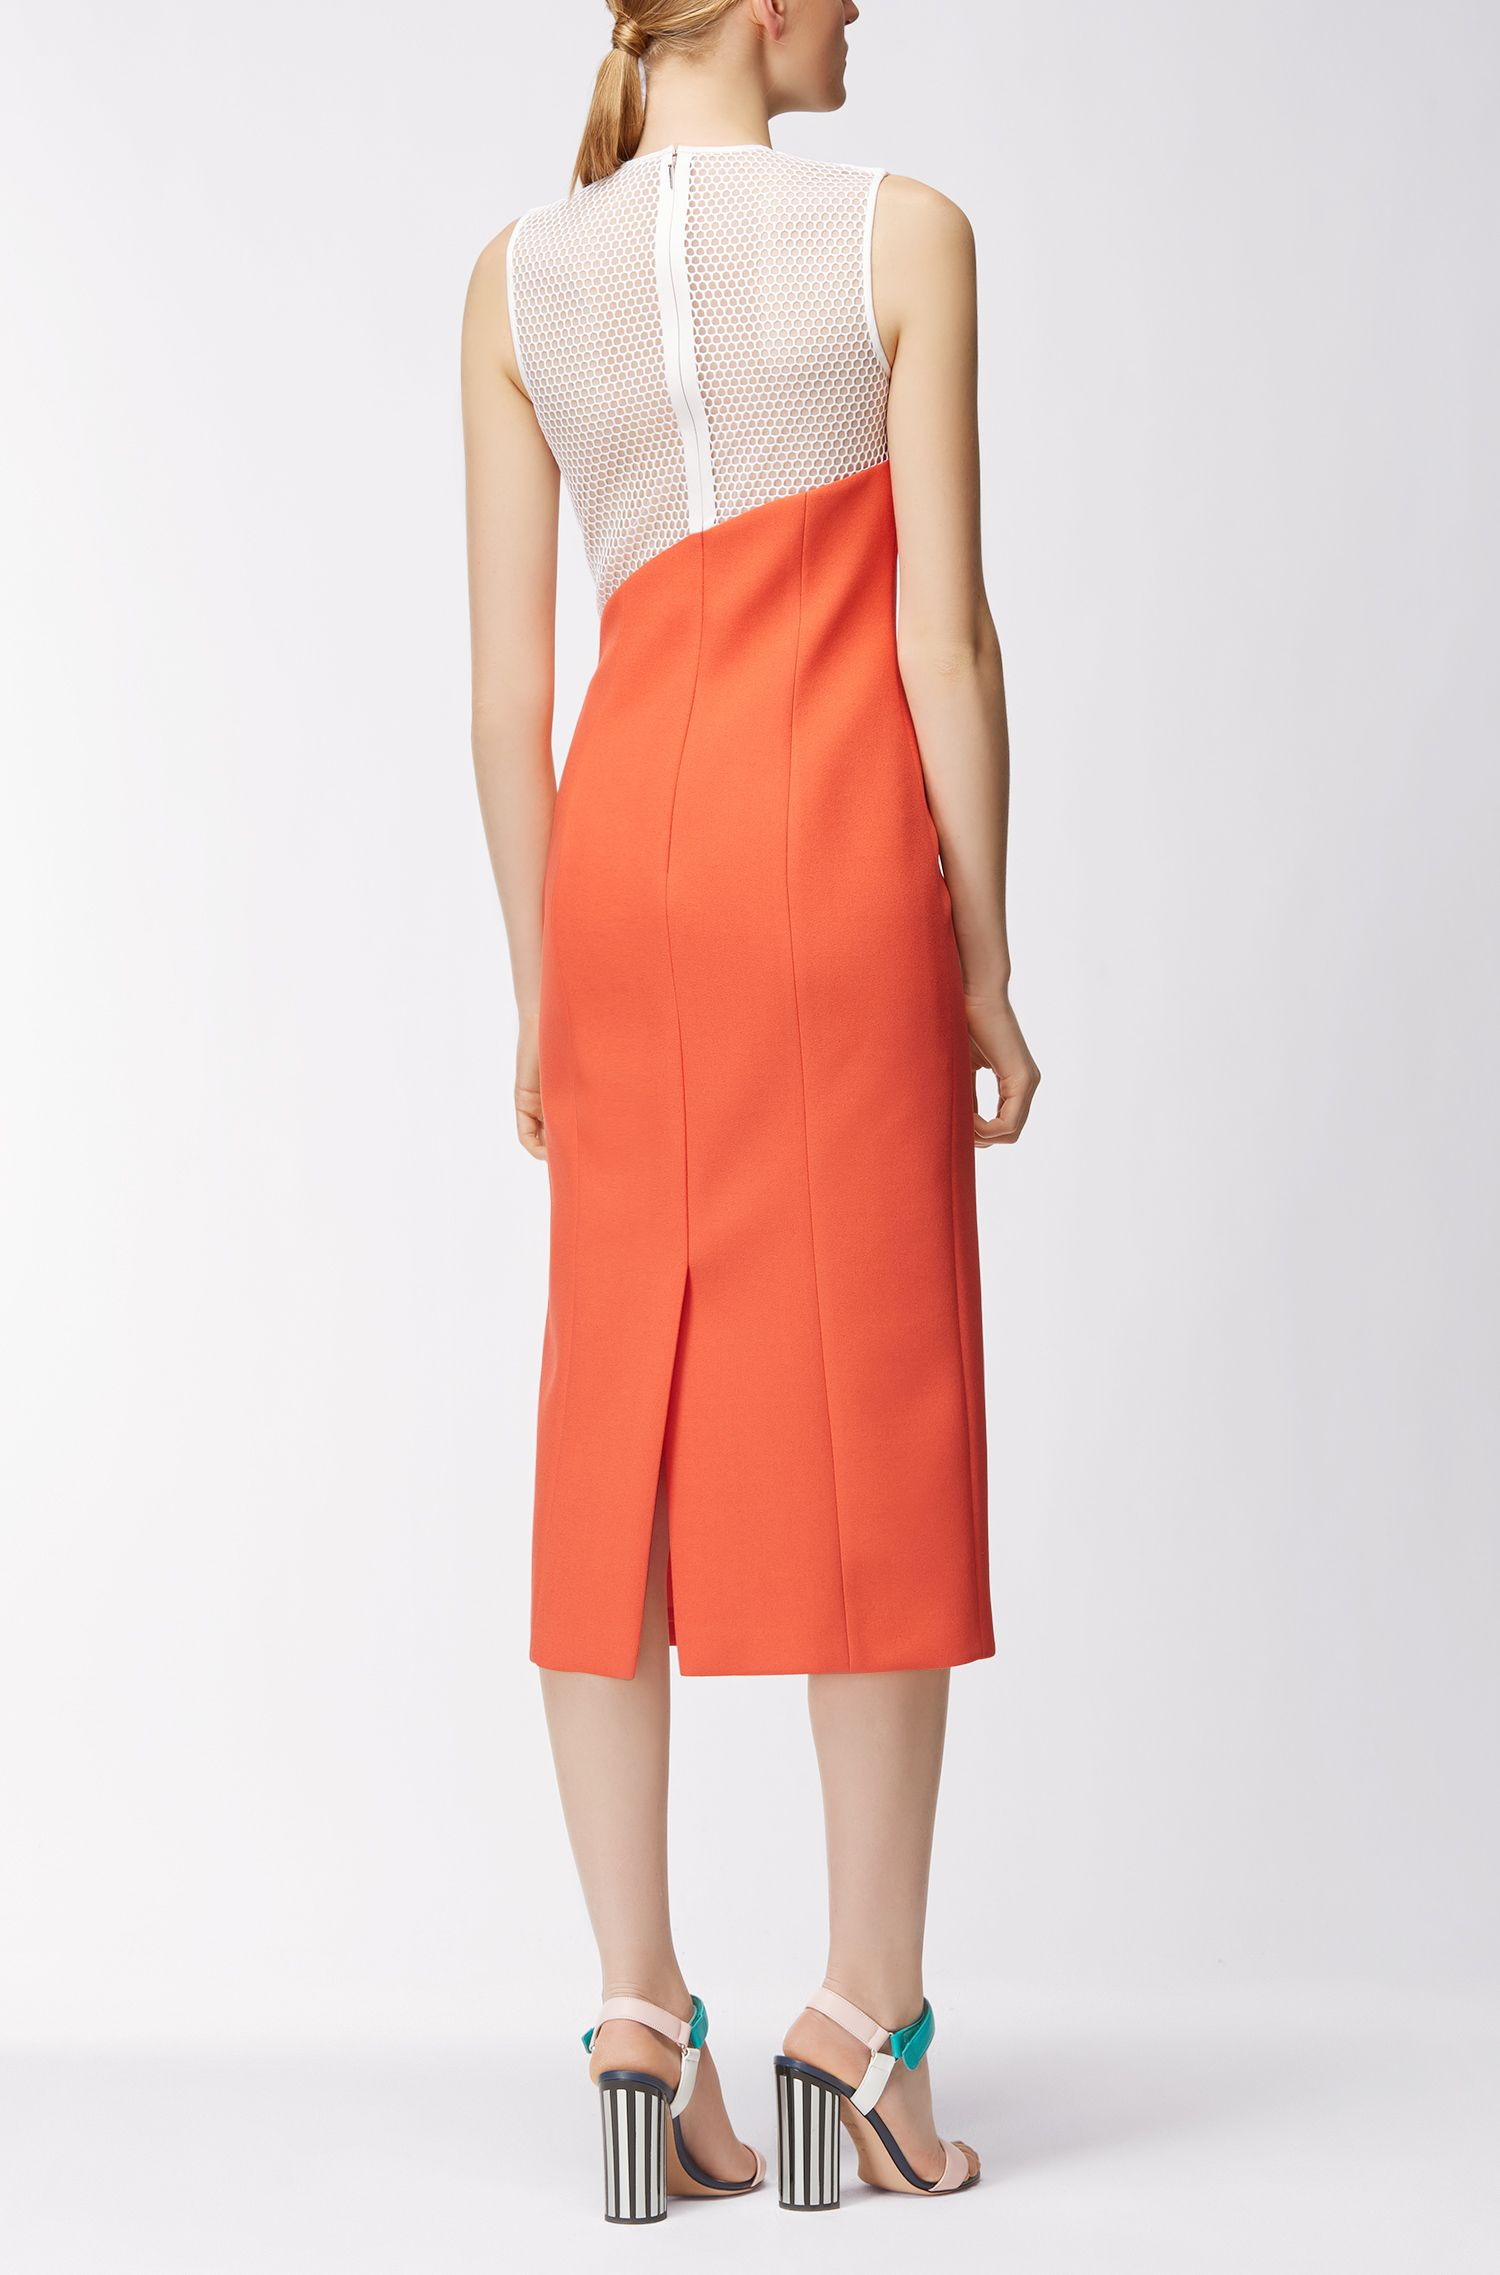 Gallery Collection Crepe Midi Sheath Dress | Dalernira GC